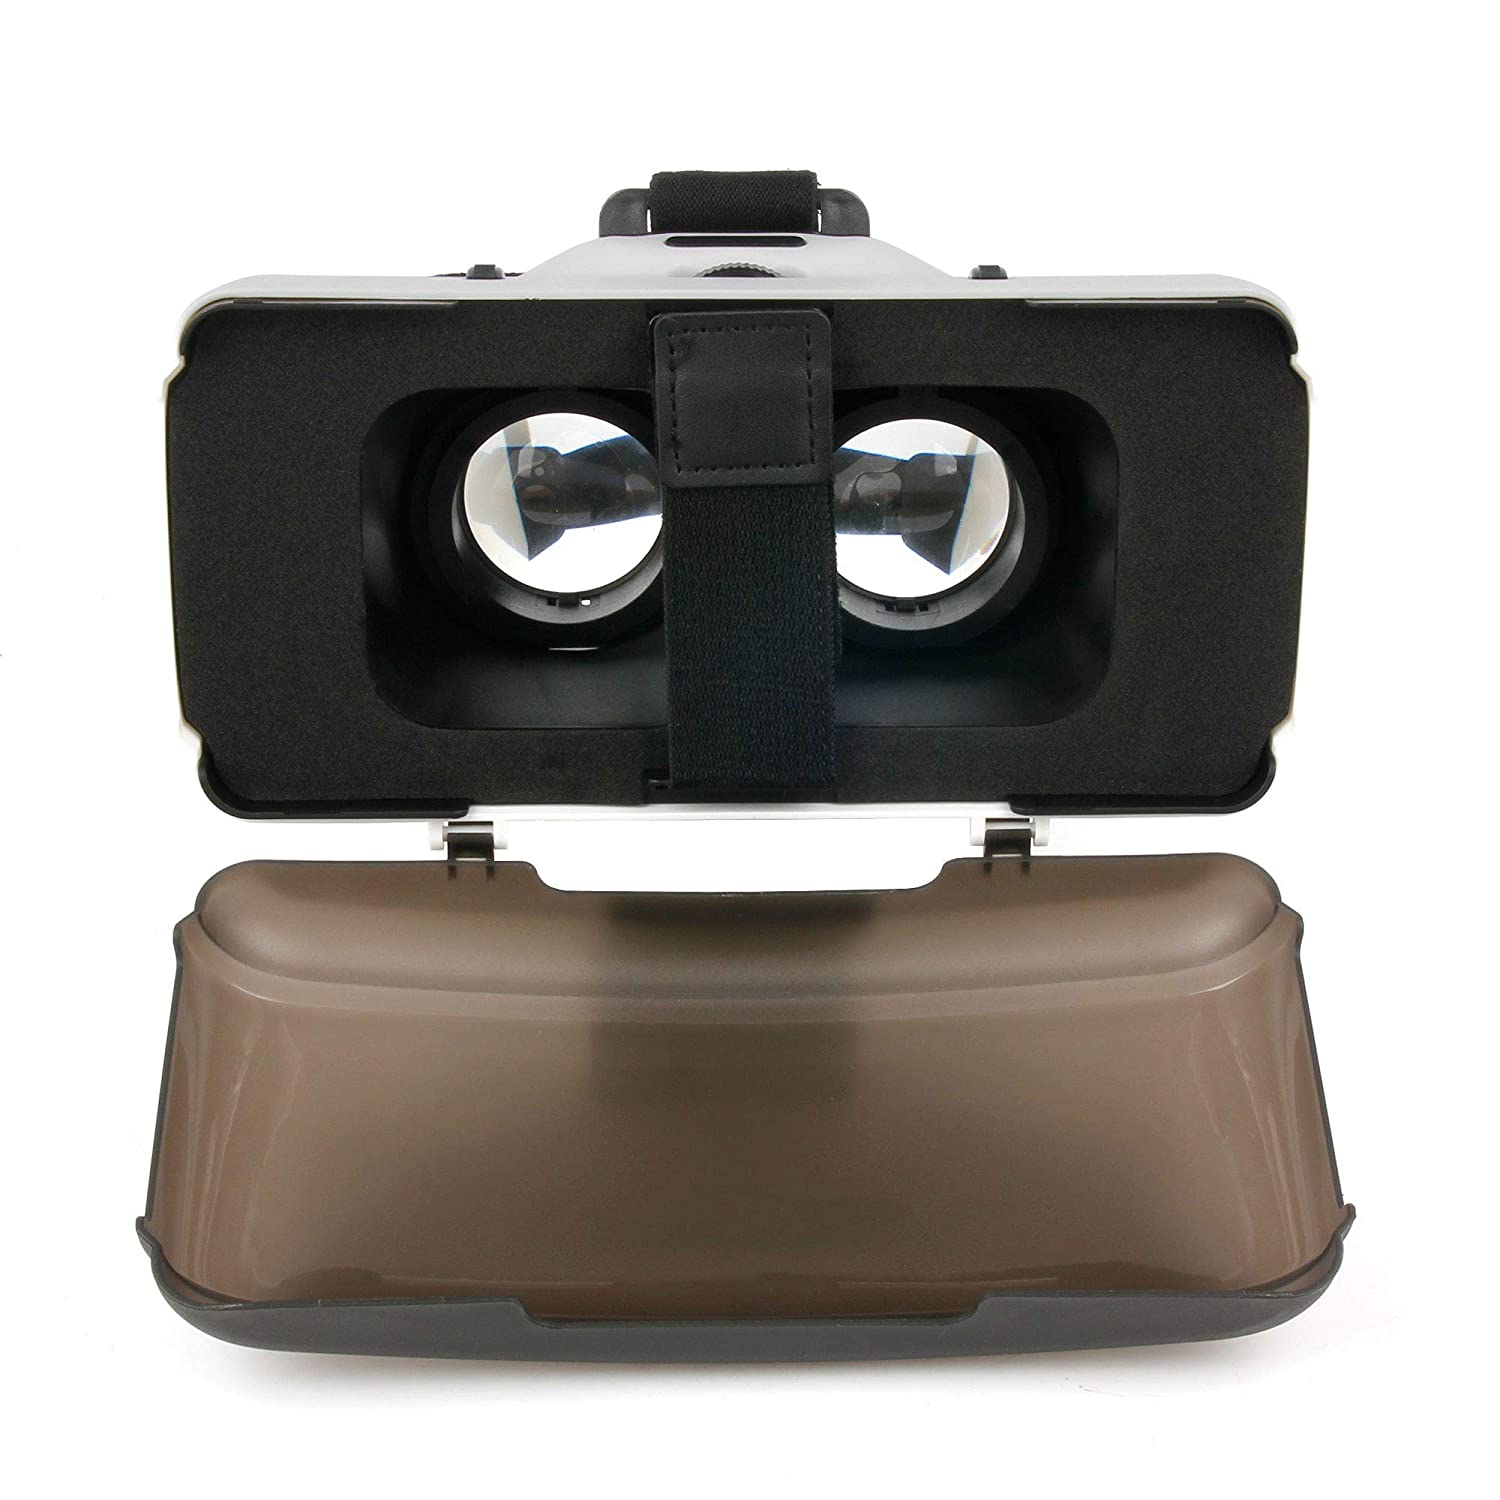 Suitable for Google Pixel 3a 2 Pixel 3a XL 2 XL DURAGADGET Padded 3D Virtual Reality VR Headset Glasses XL